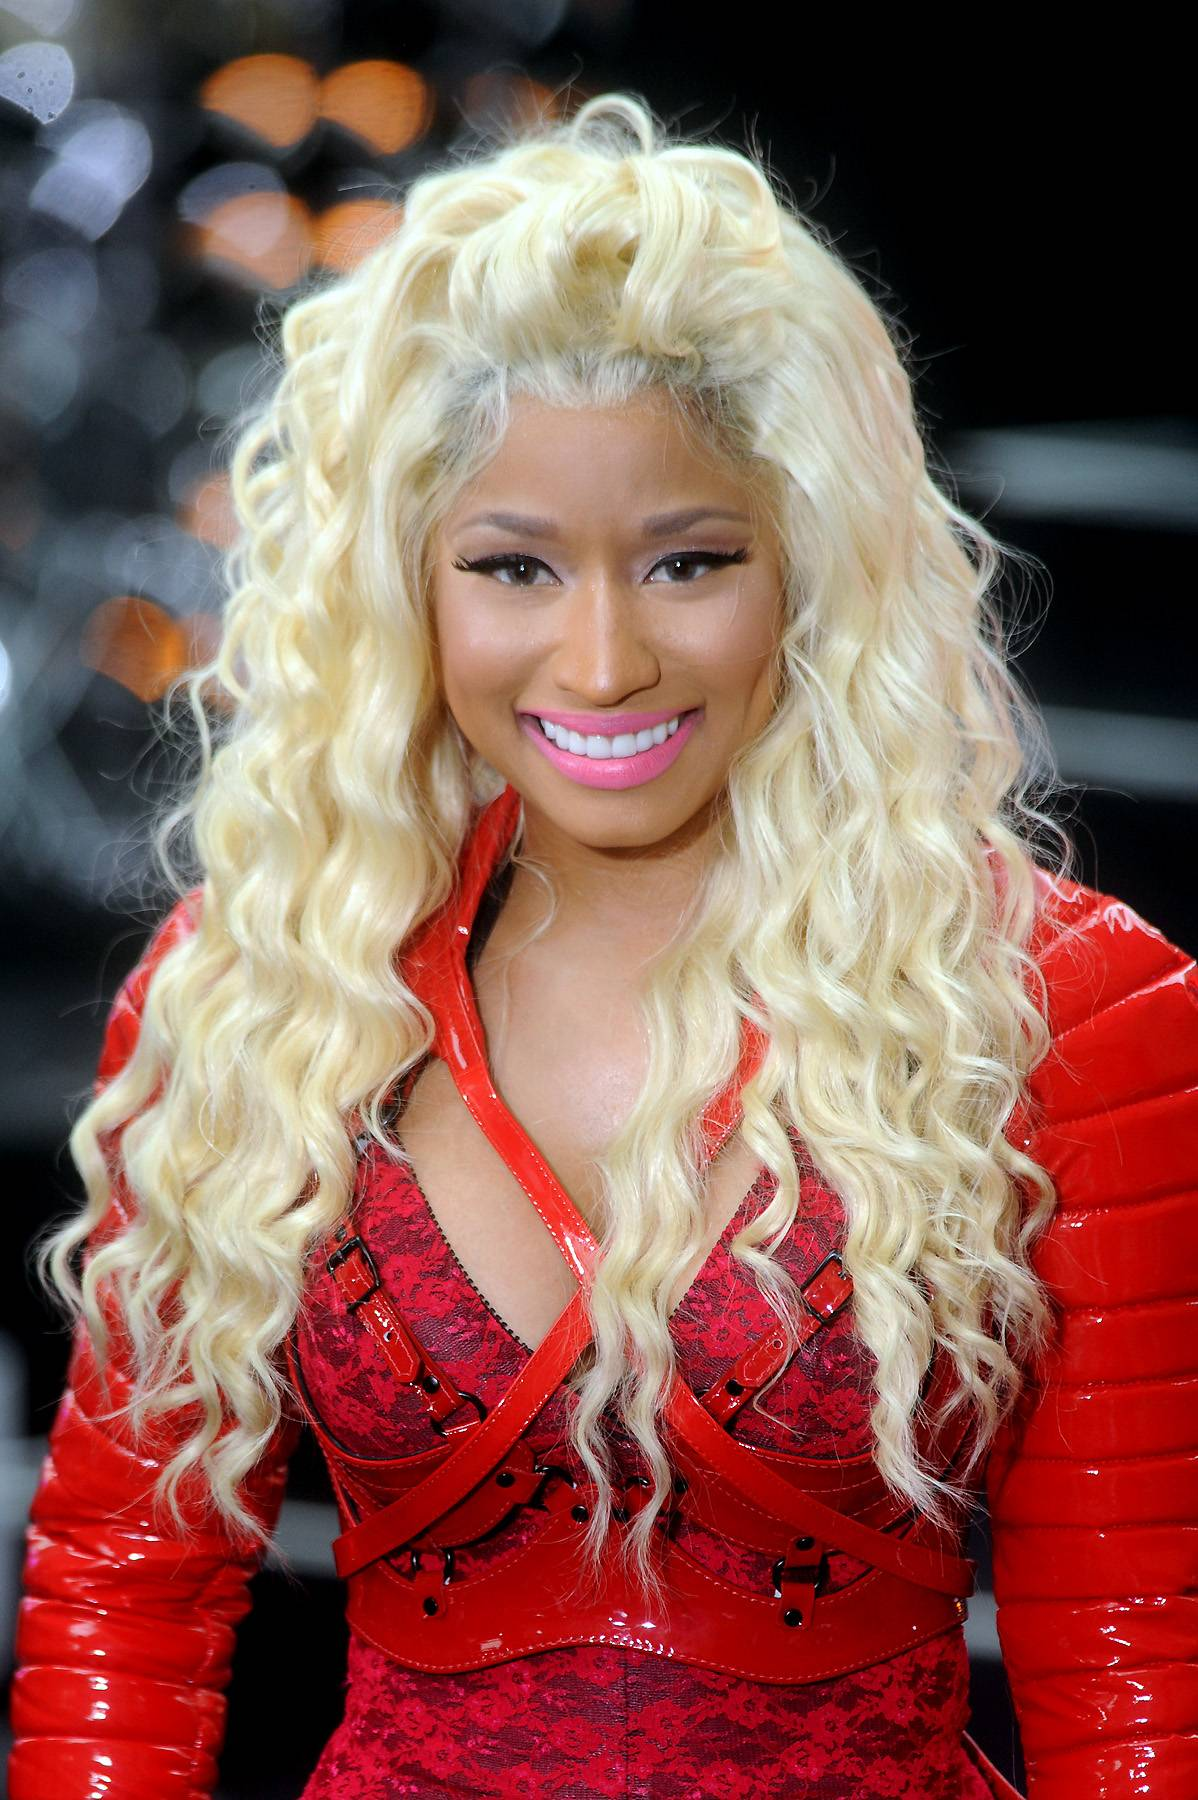 """Nicki Minaj - It all started when Banks claimed that she had to turn down a tour with Nicki to work on her album. Later that day, Nicki tweeted, """"#ManTheseB*****sDelirious,"""" and Banks assumed she was the intended target, responding, """"I could be really unprofessional and post emails between ur manager and my booking agent but I won't...#veryquicklytakingyourjob.""""  (Photo: Landov)"""